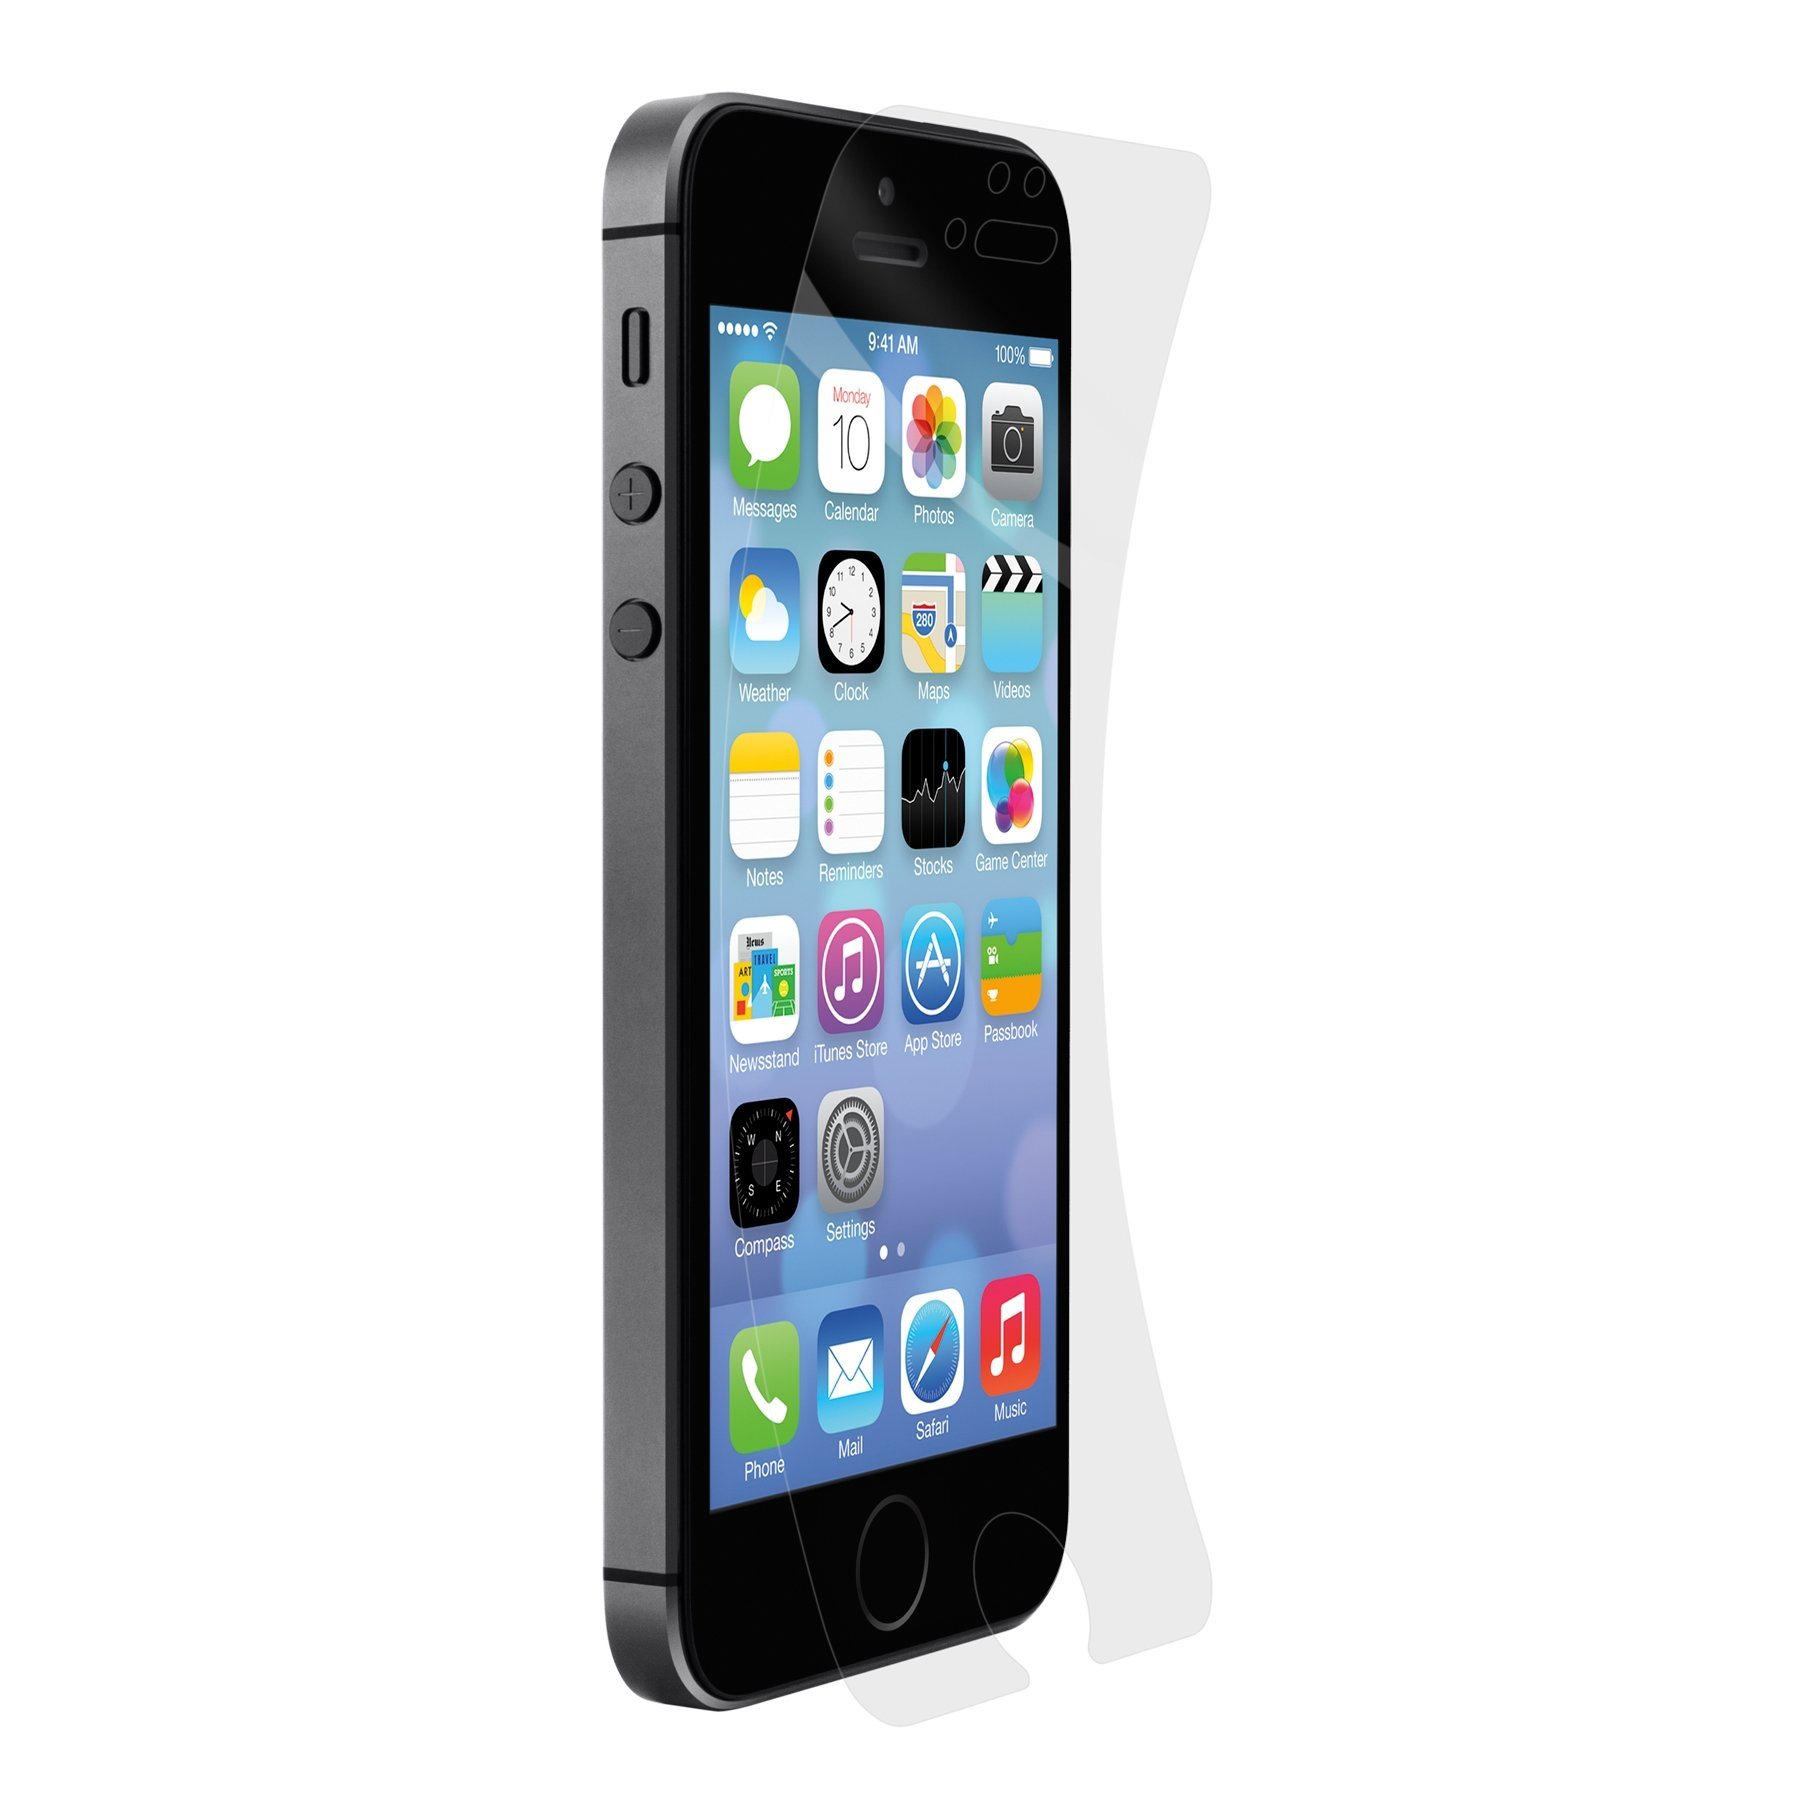 Belkin Trueclear Invisiglass Screen Protector for Apple iPhone 5/5s/5c - Retail Packaging